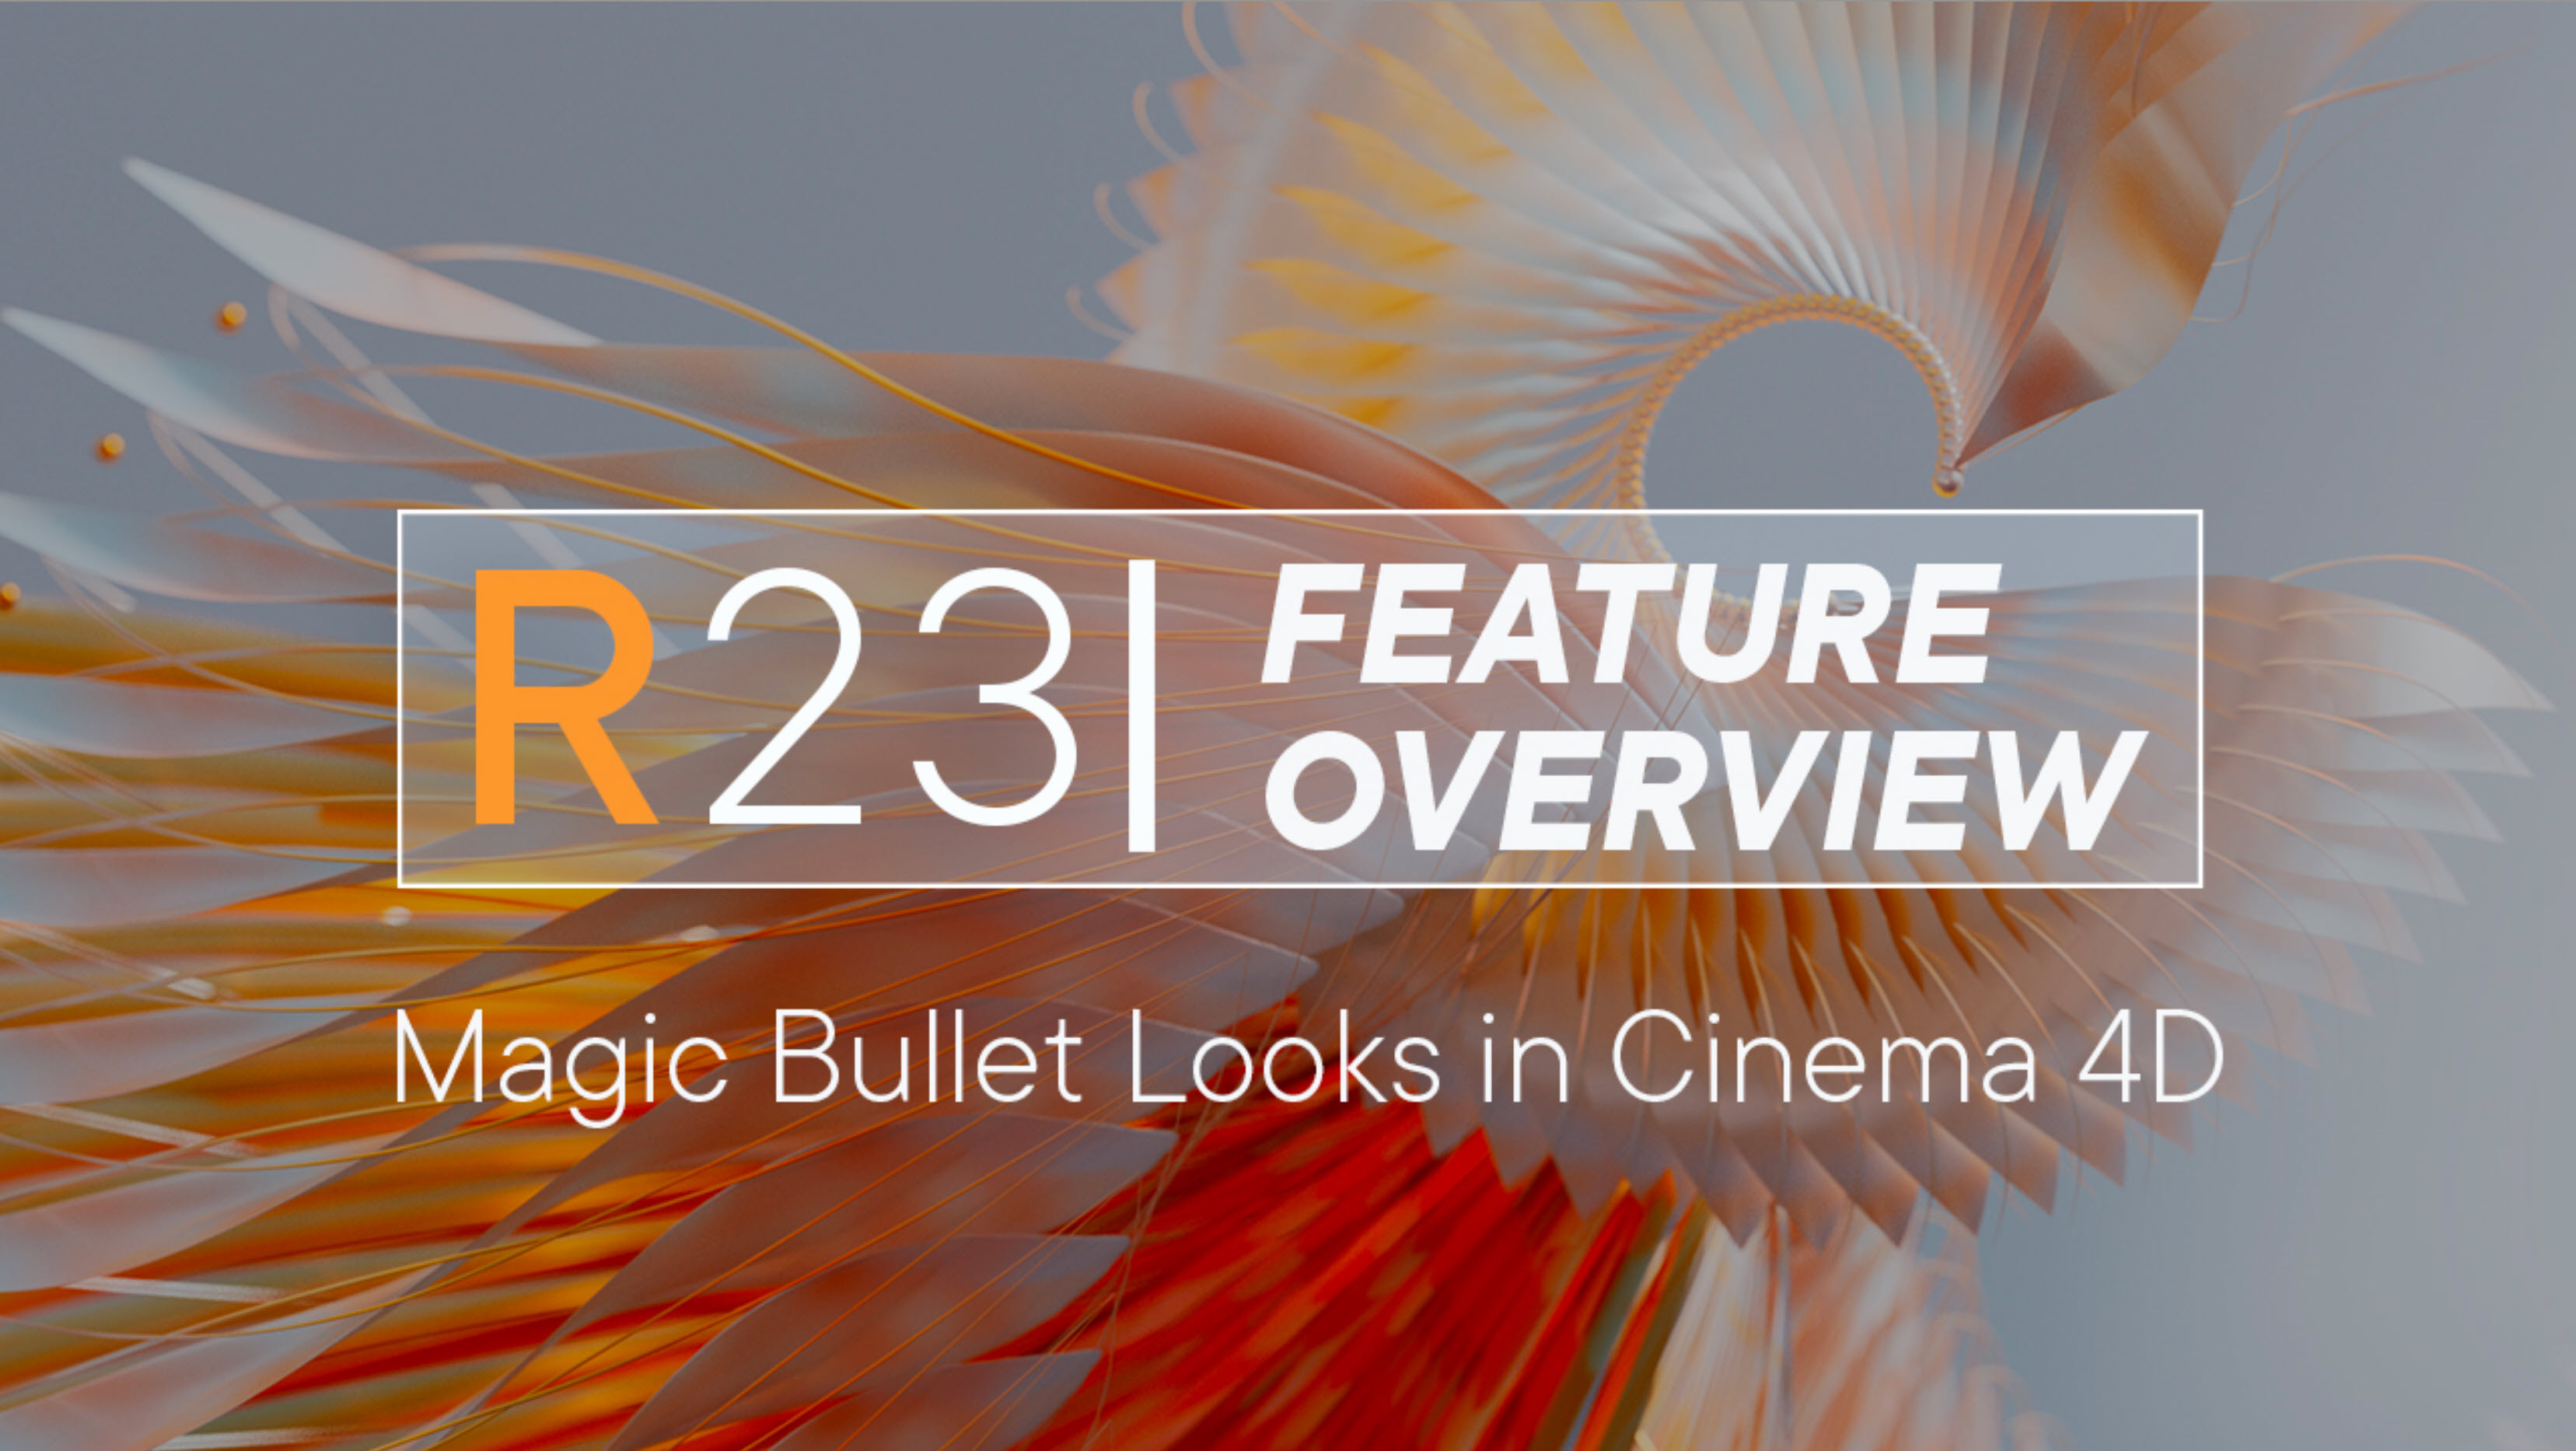 Magic Bullet Looks now in Cinema 4D!